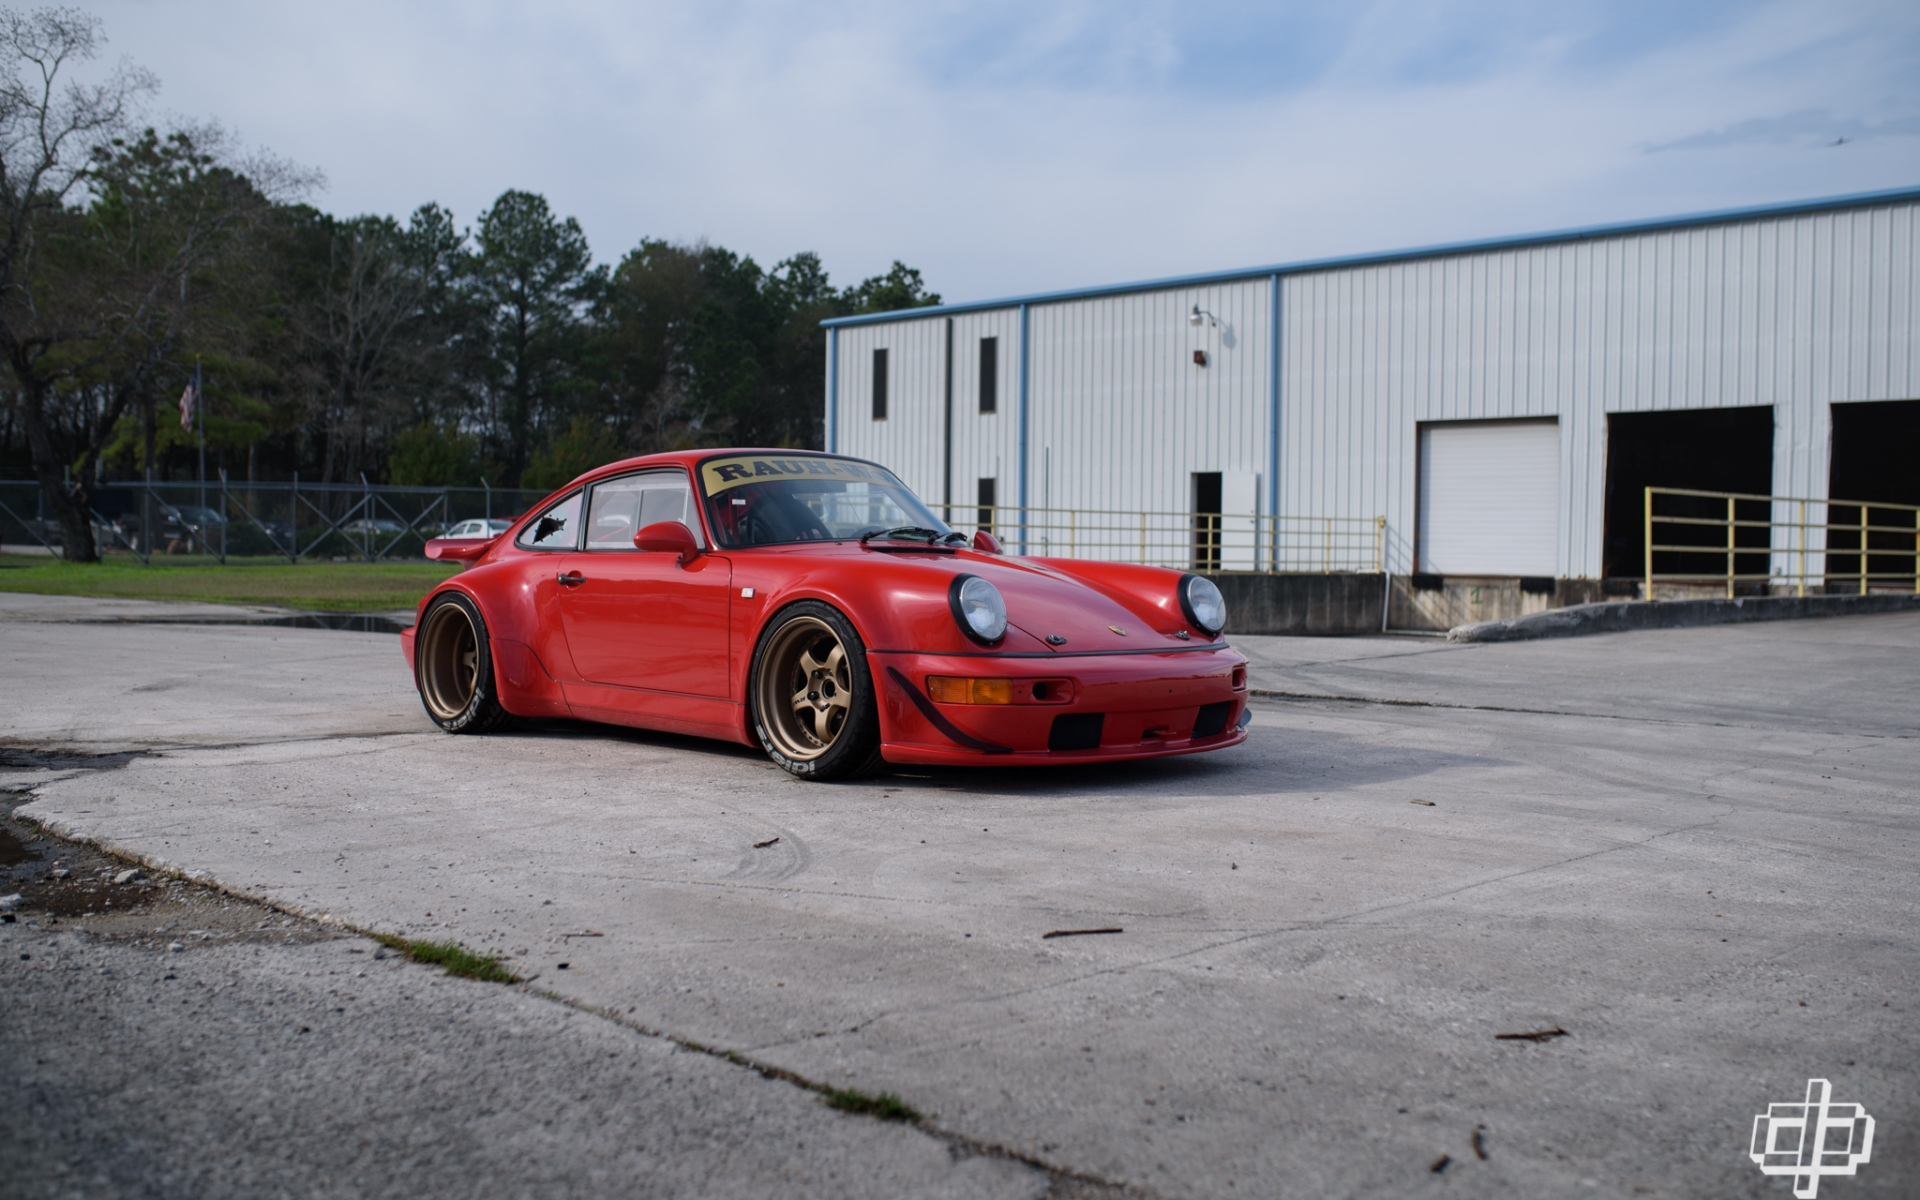 The Arrival of 'RWB Kana' - Houston Automotive Photography